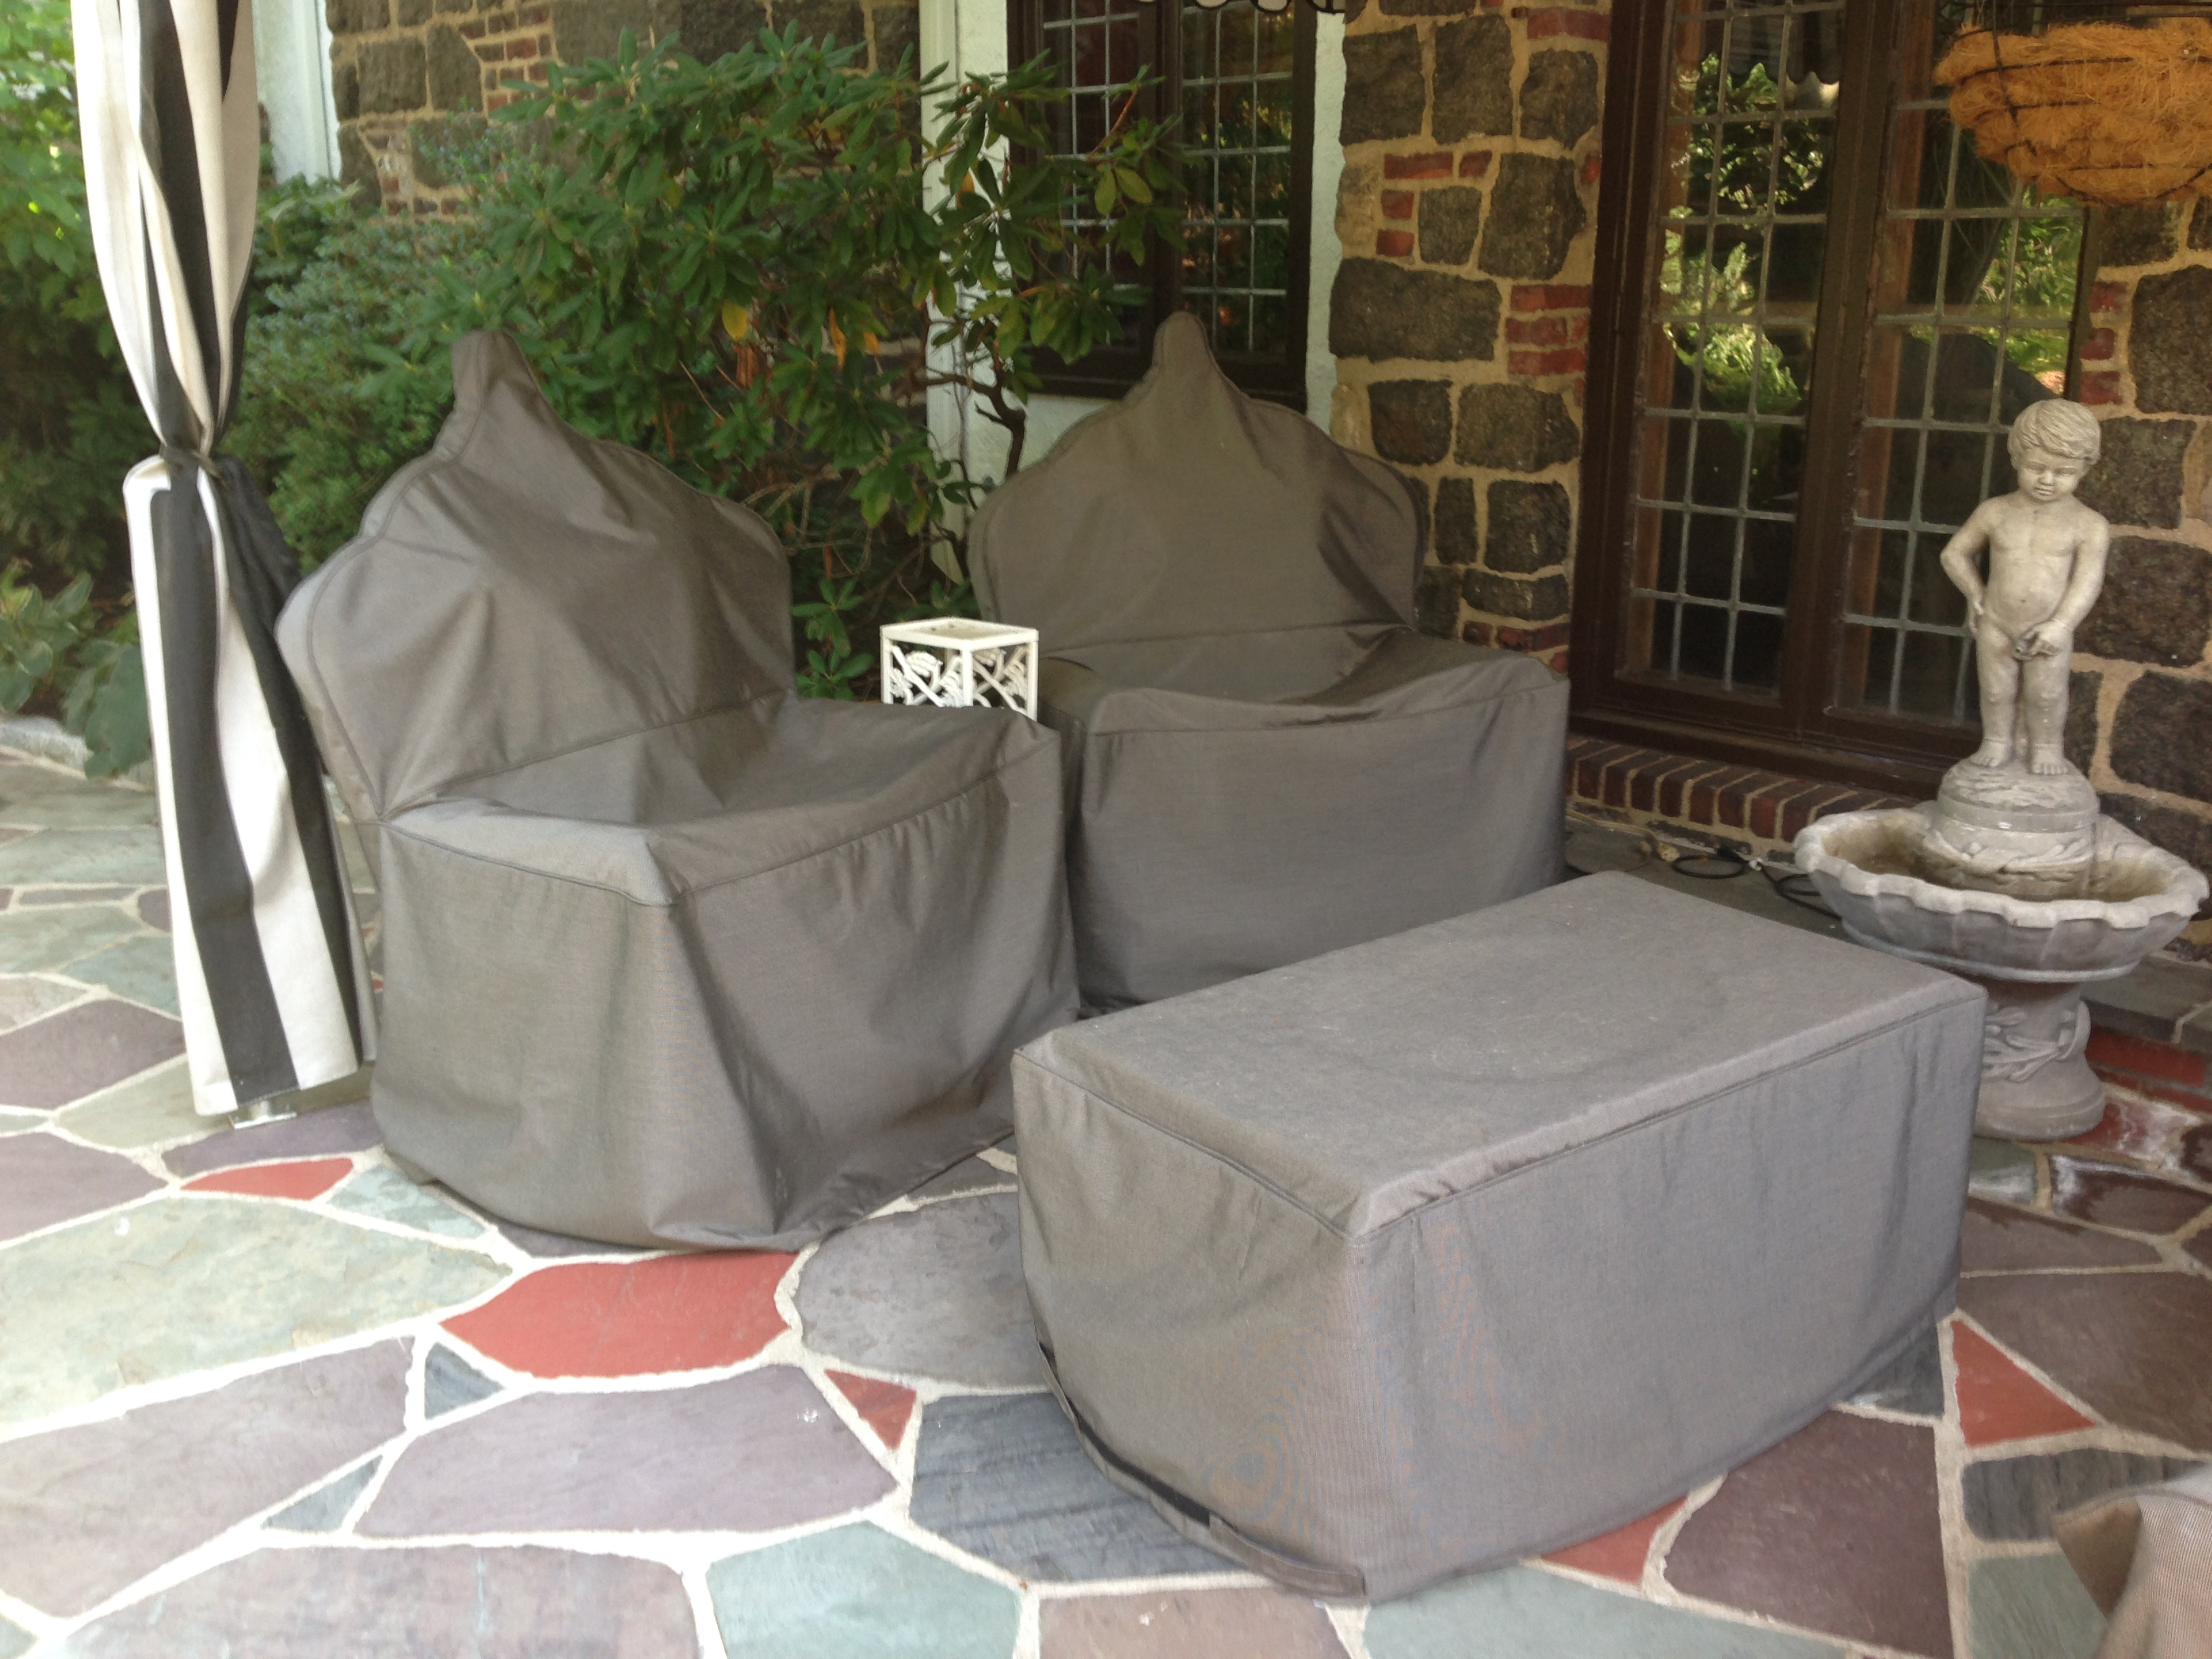 Waterproof Patio Furniture Covers Outdoor Sectional Covers throughout size 3264 X 2448